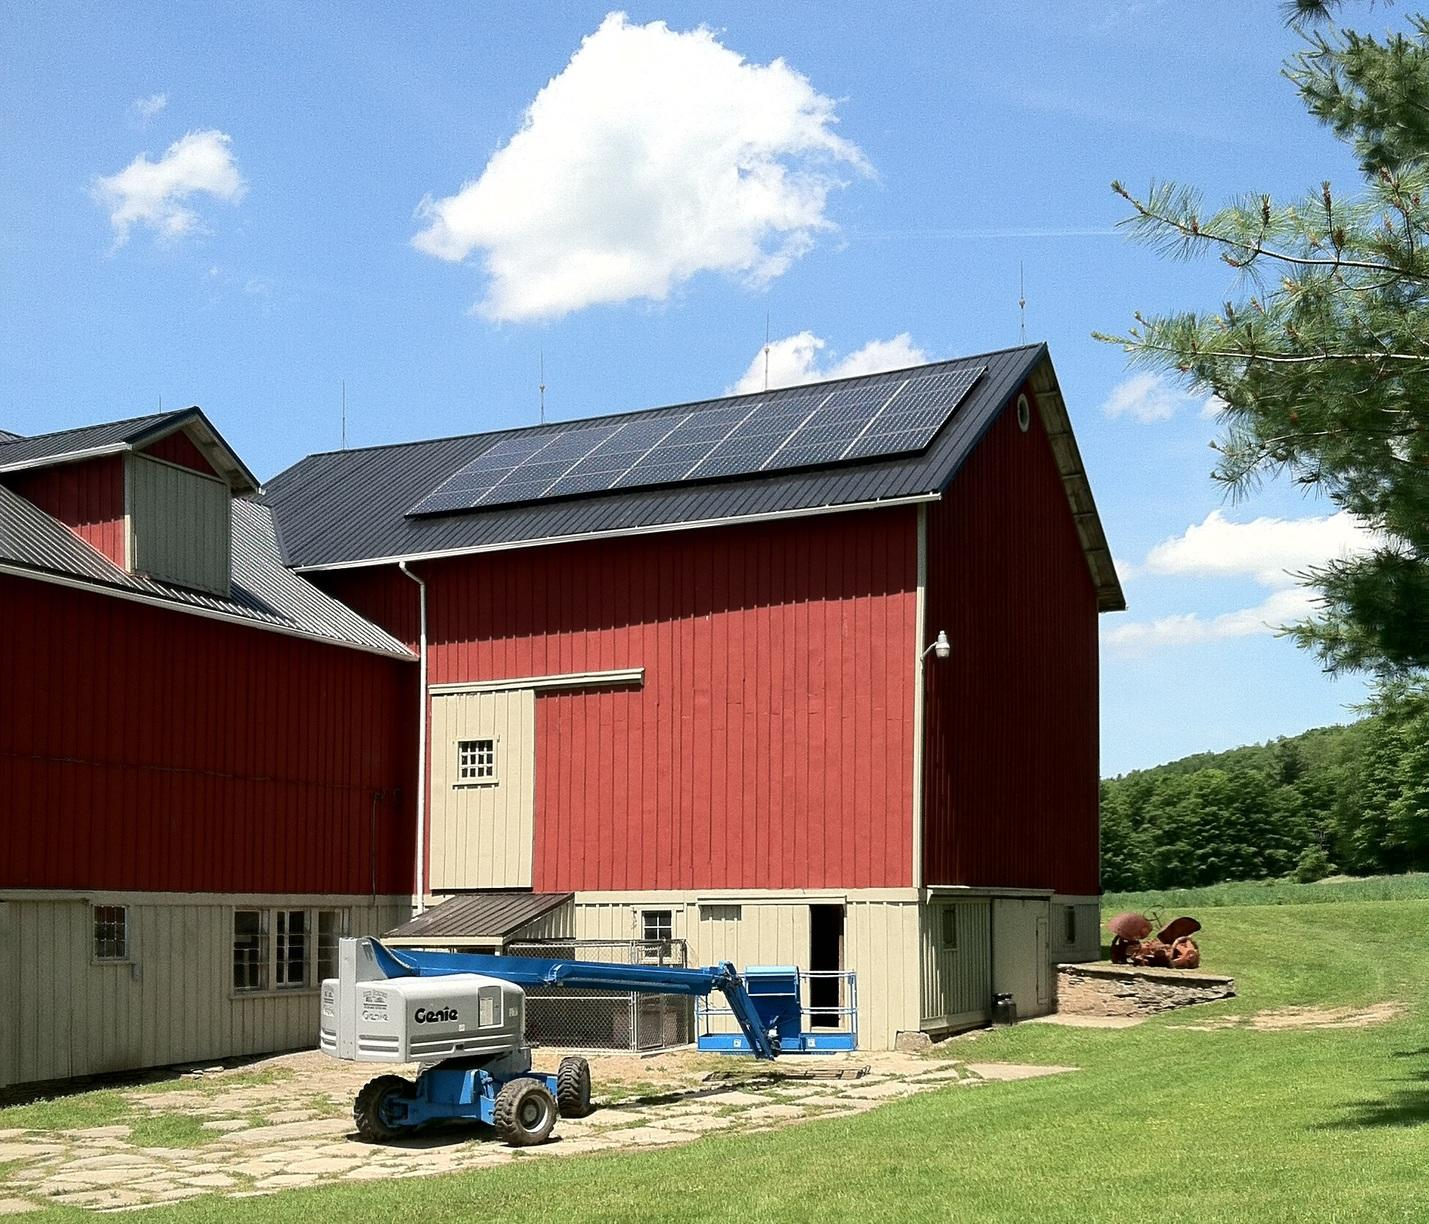 Solar Panel Installation in Prattsburgh, NY